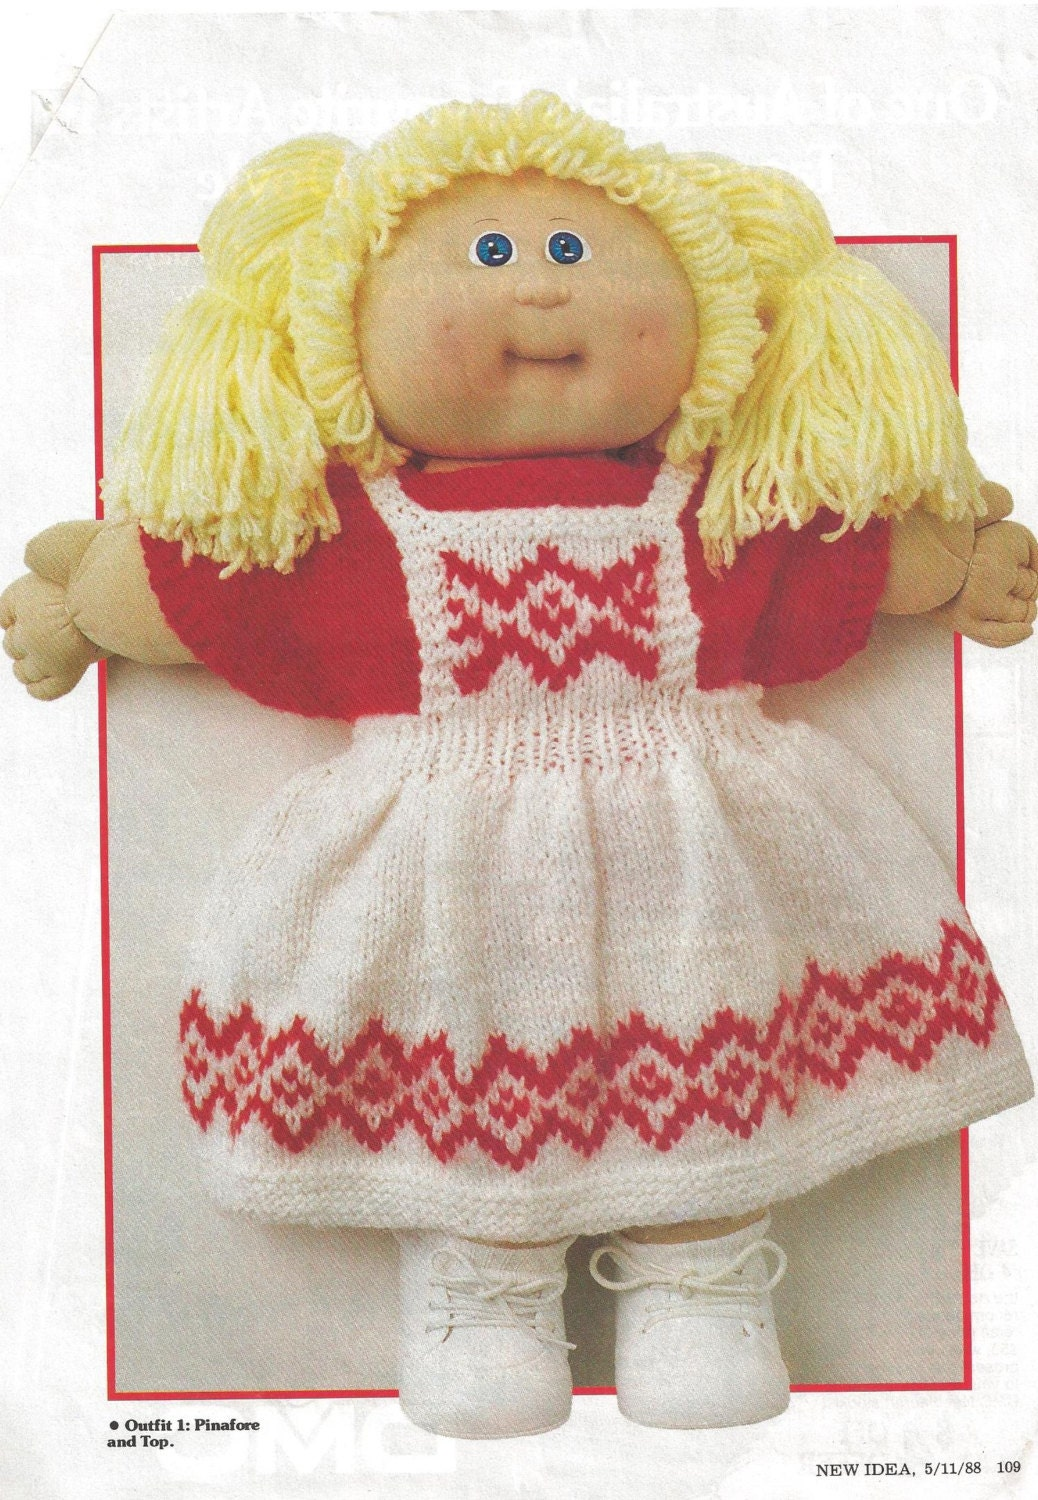 Knitting Patterns For Cabbage Patch Dolls : Knitting Pattern Vintage Cabbage Patch Doll Four Outfits 1988